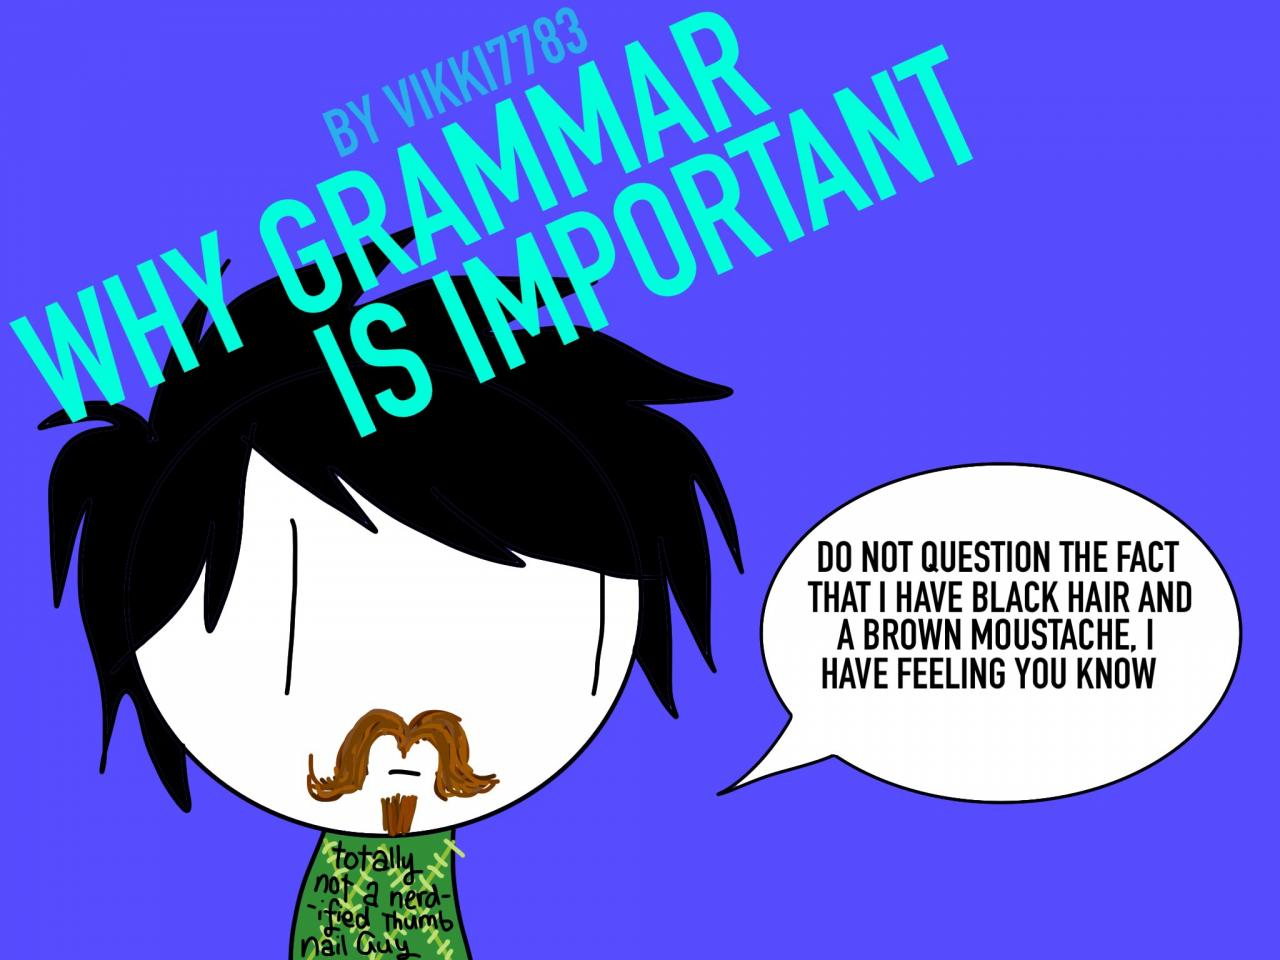 why grammar is important Is good grammar still important while texting and verbal slang are widely  accepted in many scenarios, your grammar skills will set you apart in.